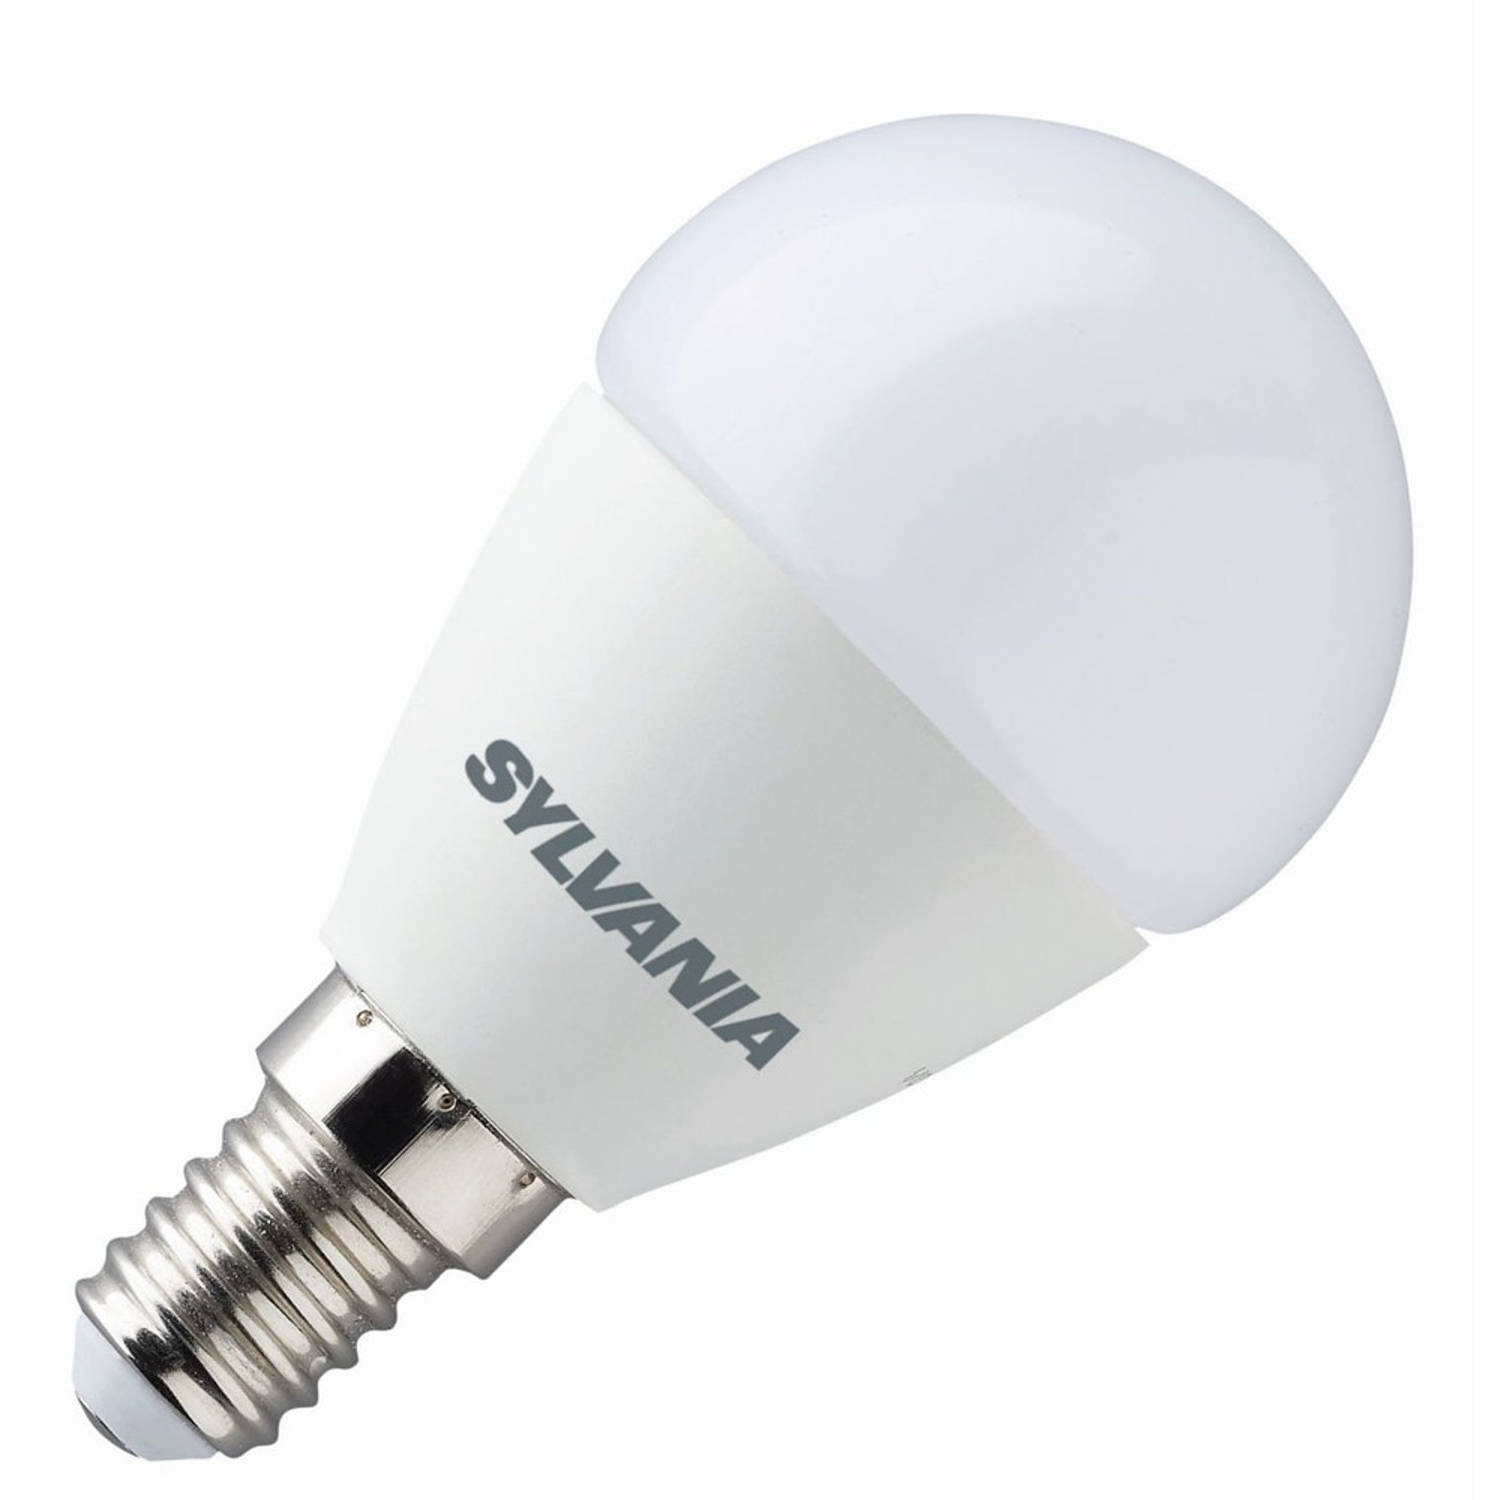 Sylvania toledo stepdim kogellamp led 5,5w (vervangt 40w) kleine fitting e14